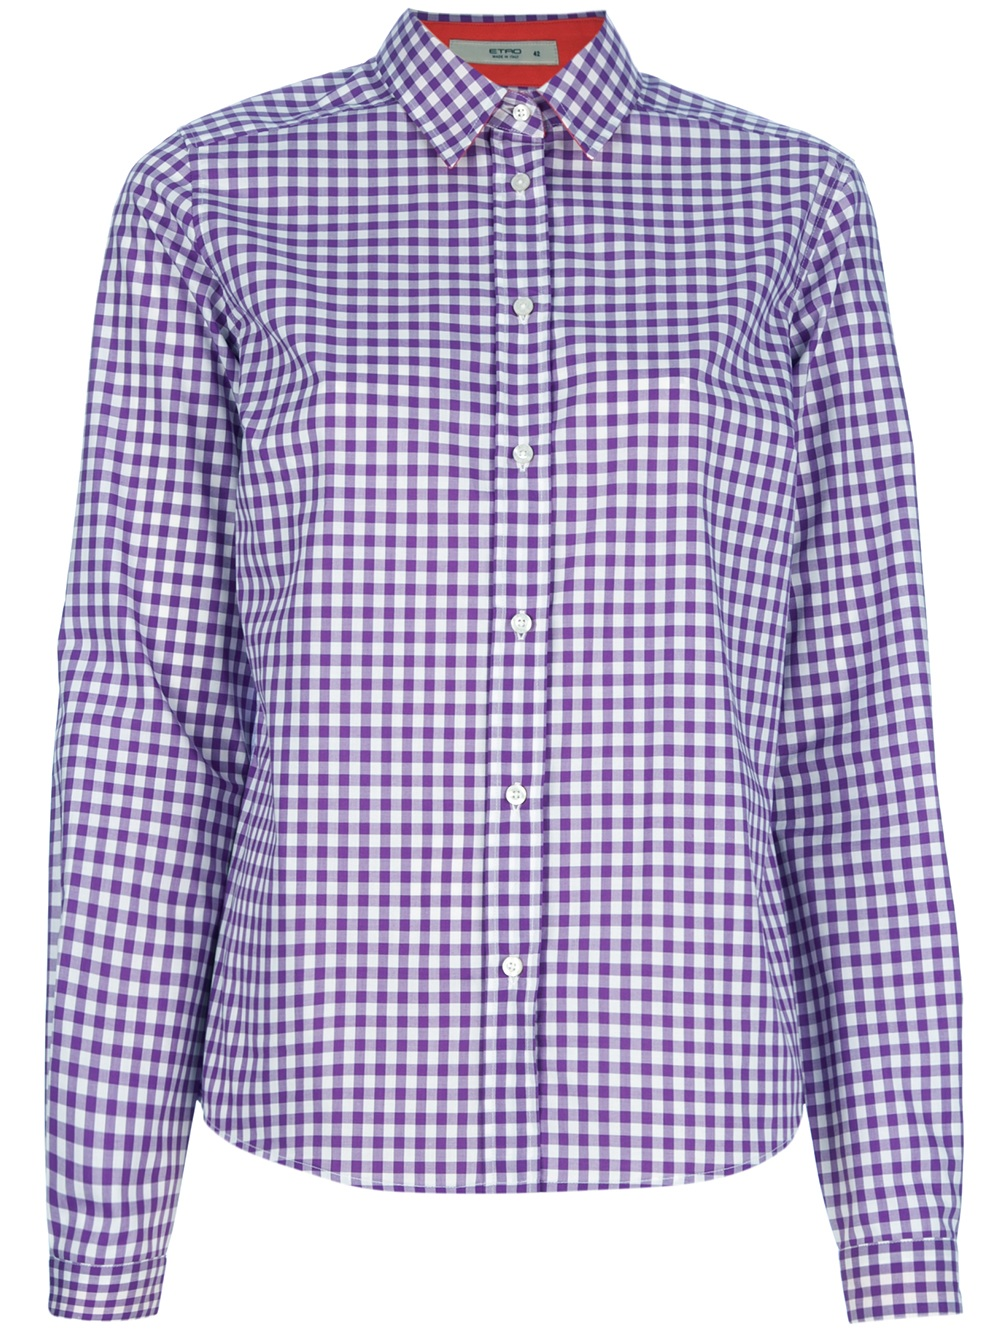 Etro gingham shirt in purple white lyst for Purple and white checked shirt